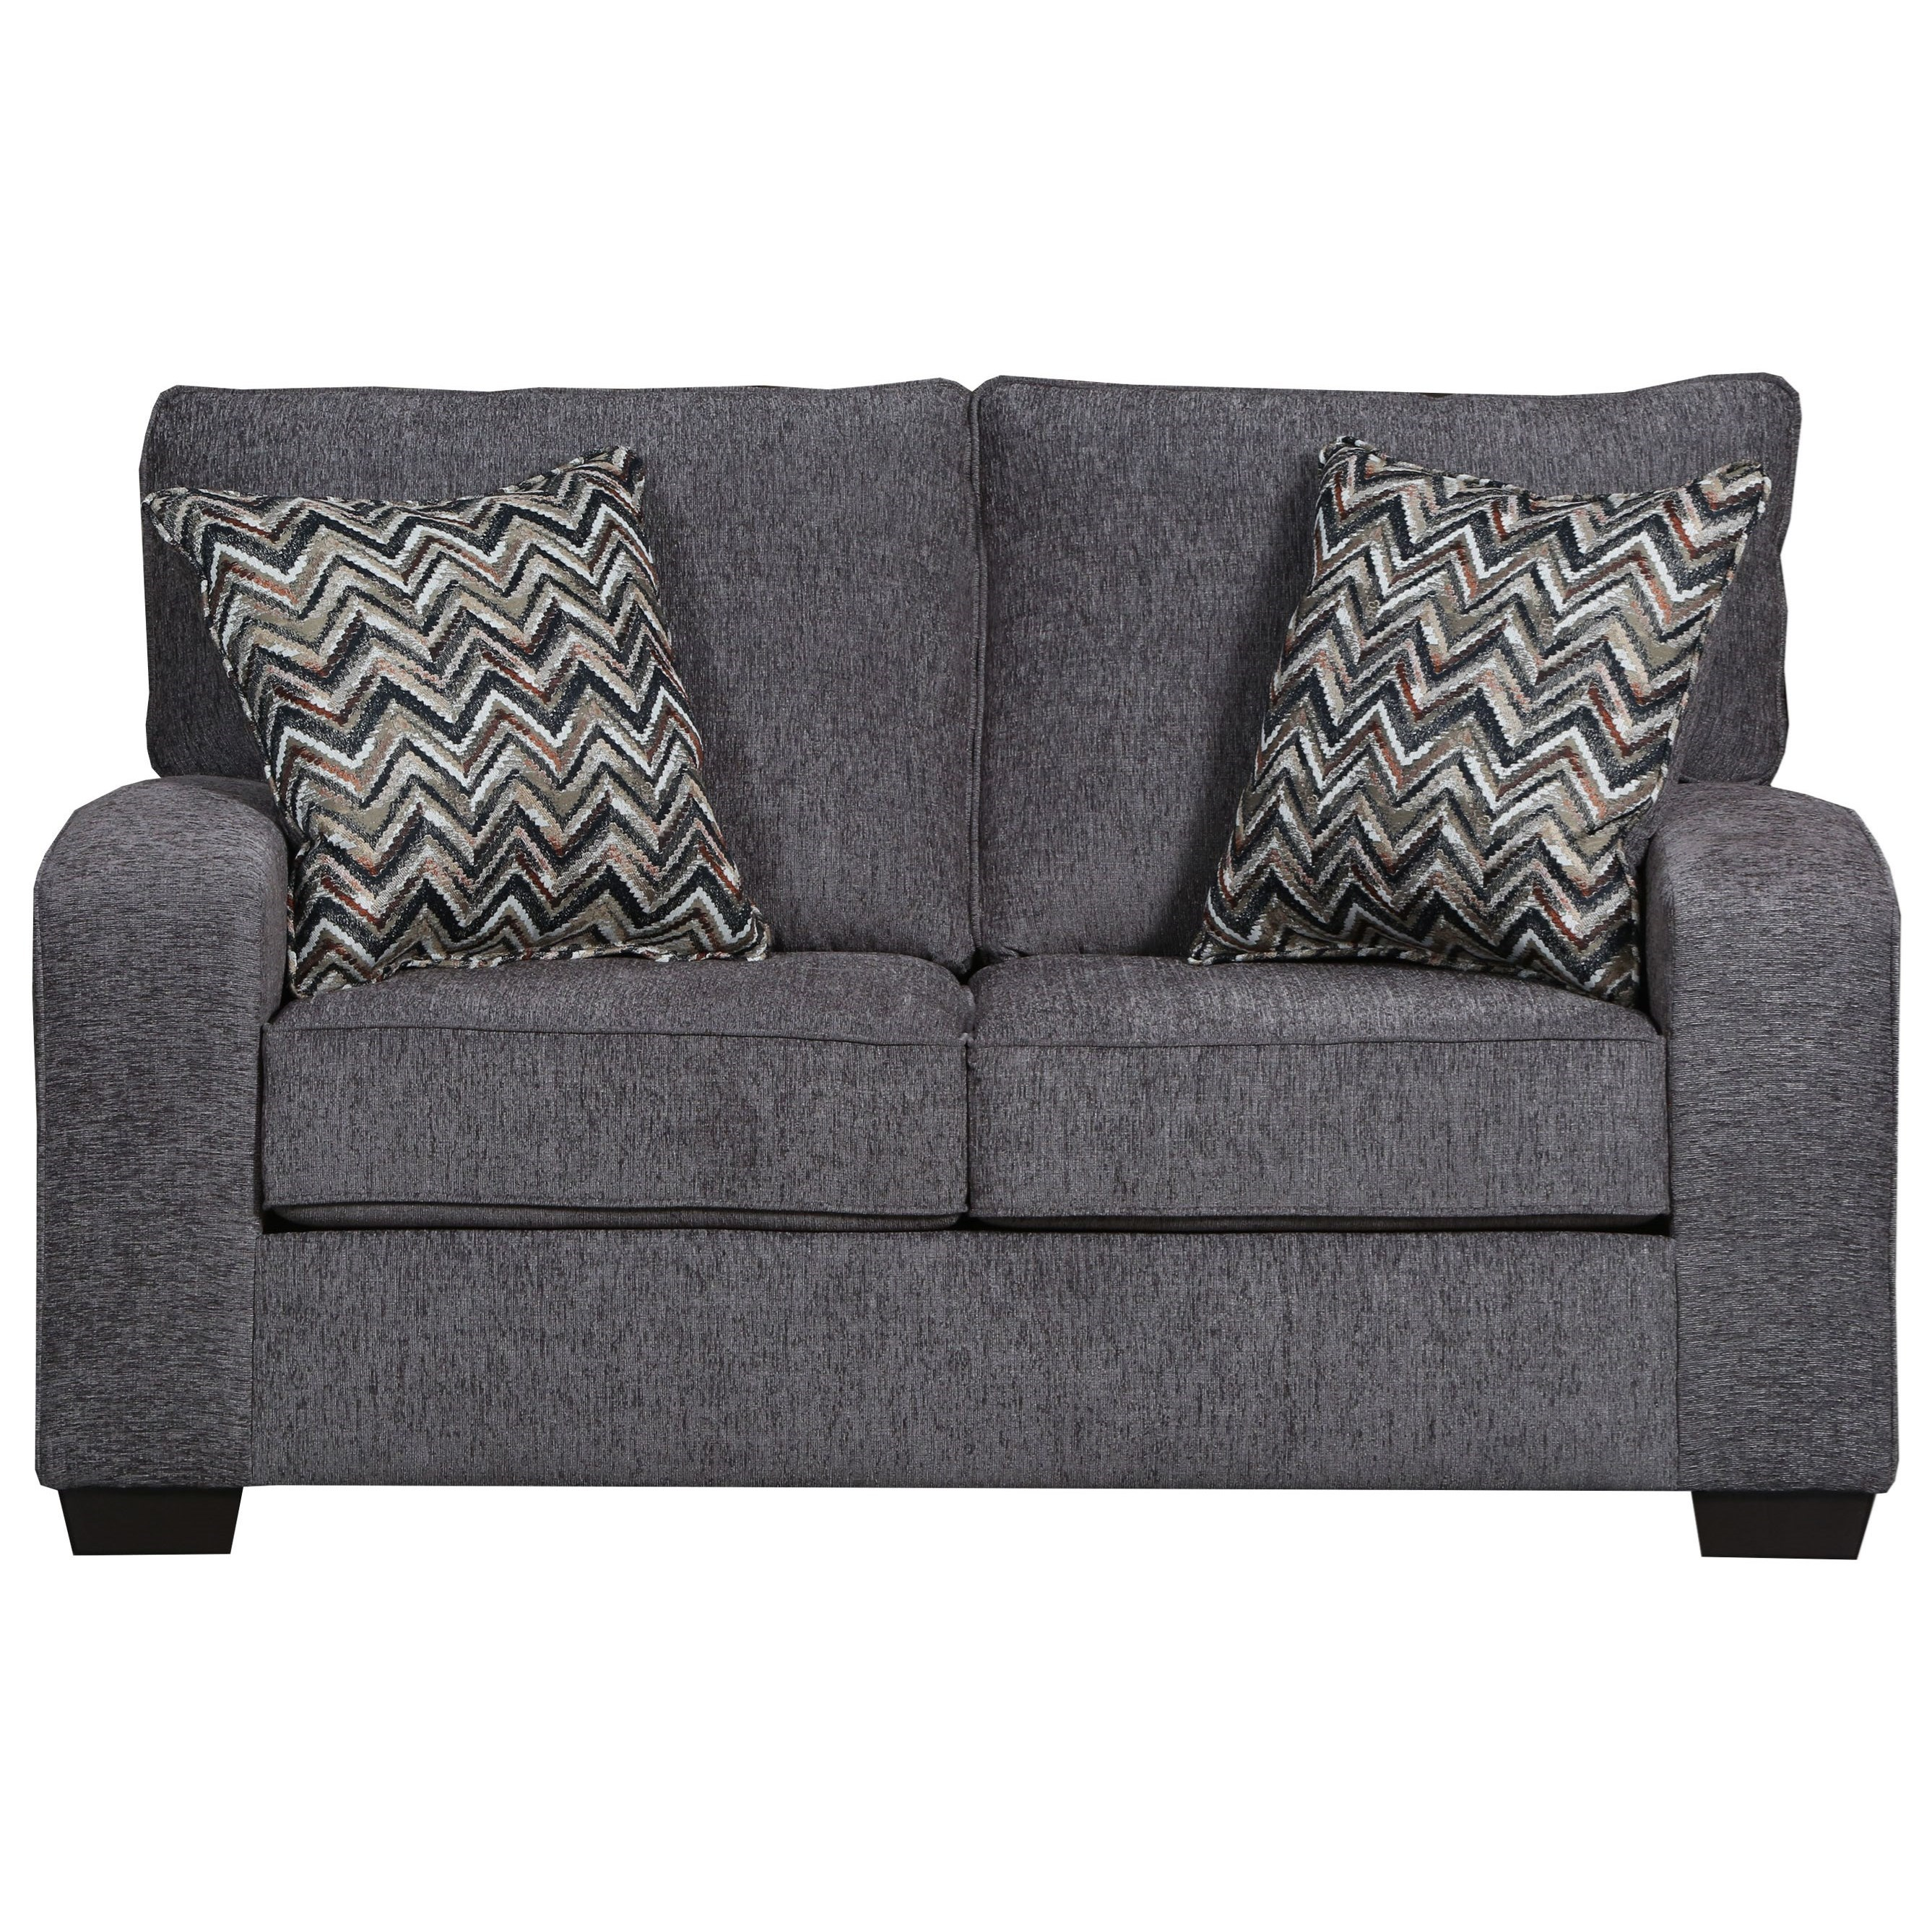 7077 Loveseat by United Furniture Industries at Dream Home Interiors